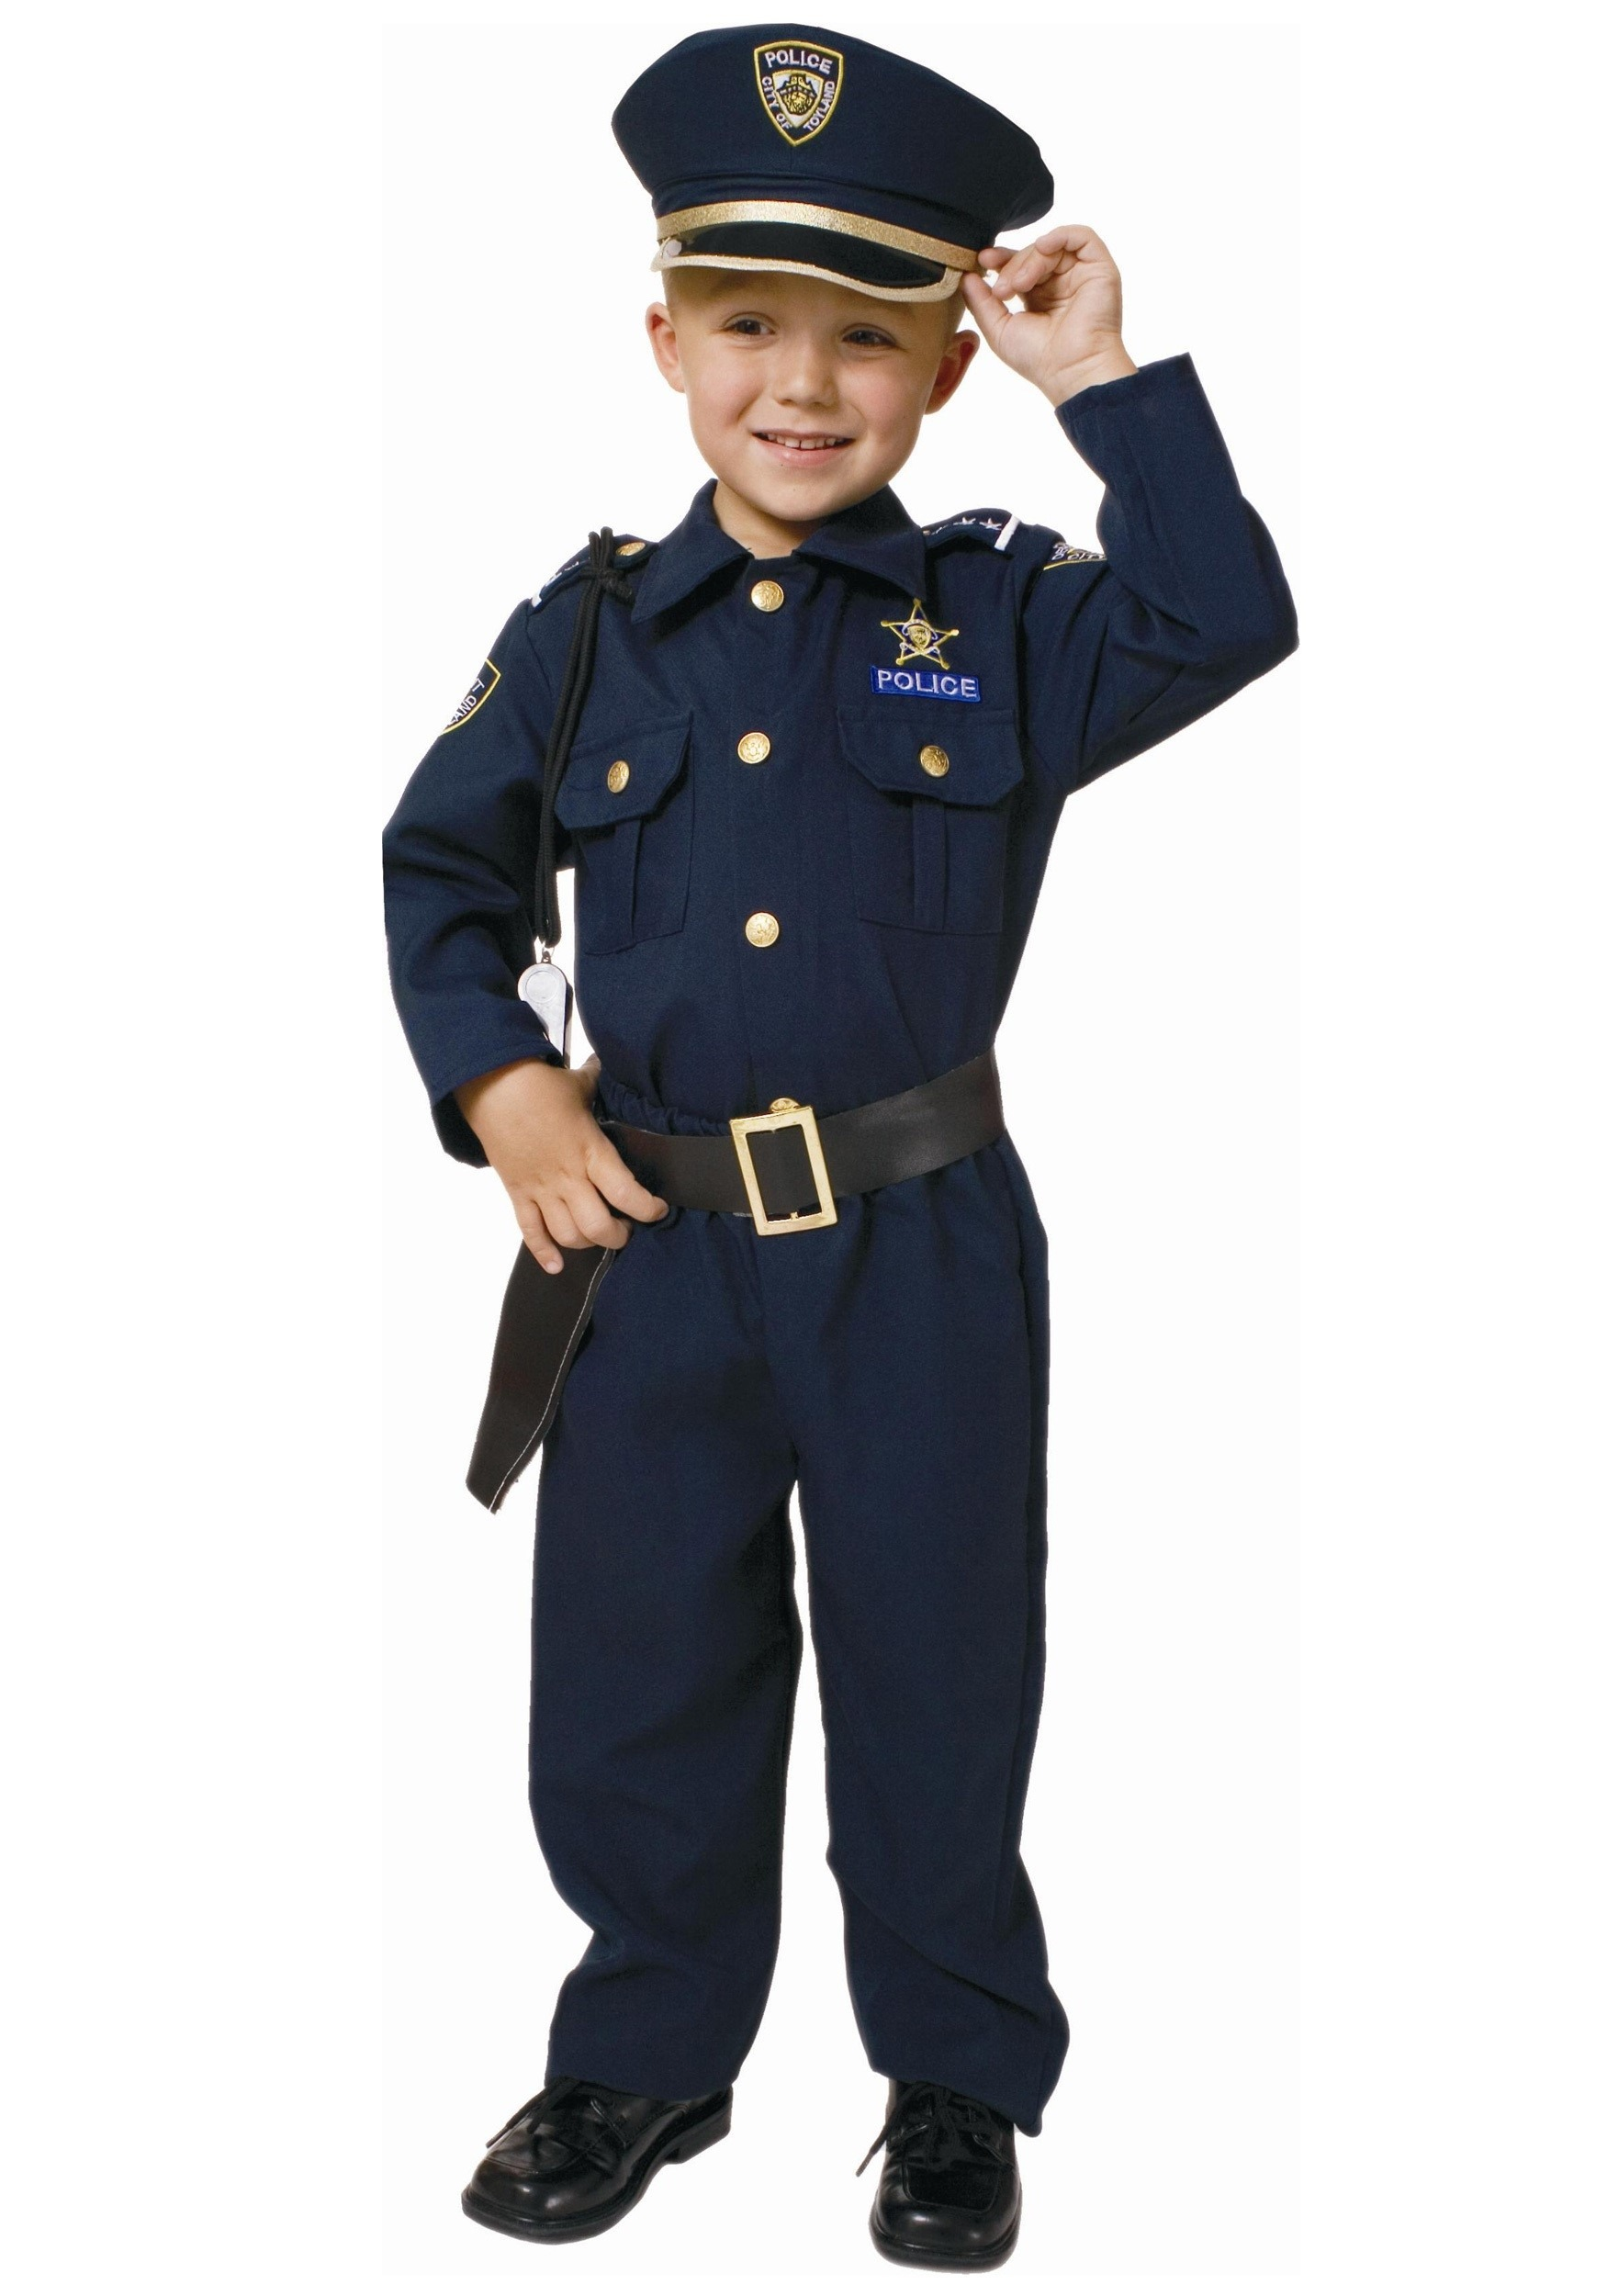 Child Deluxe Police Officer Costume